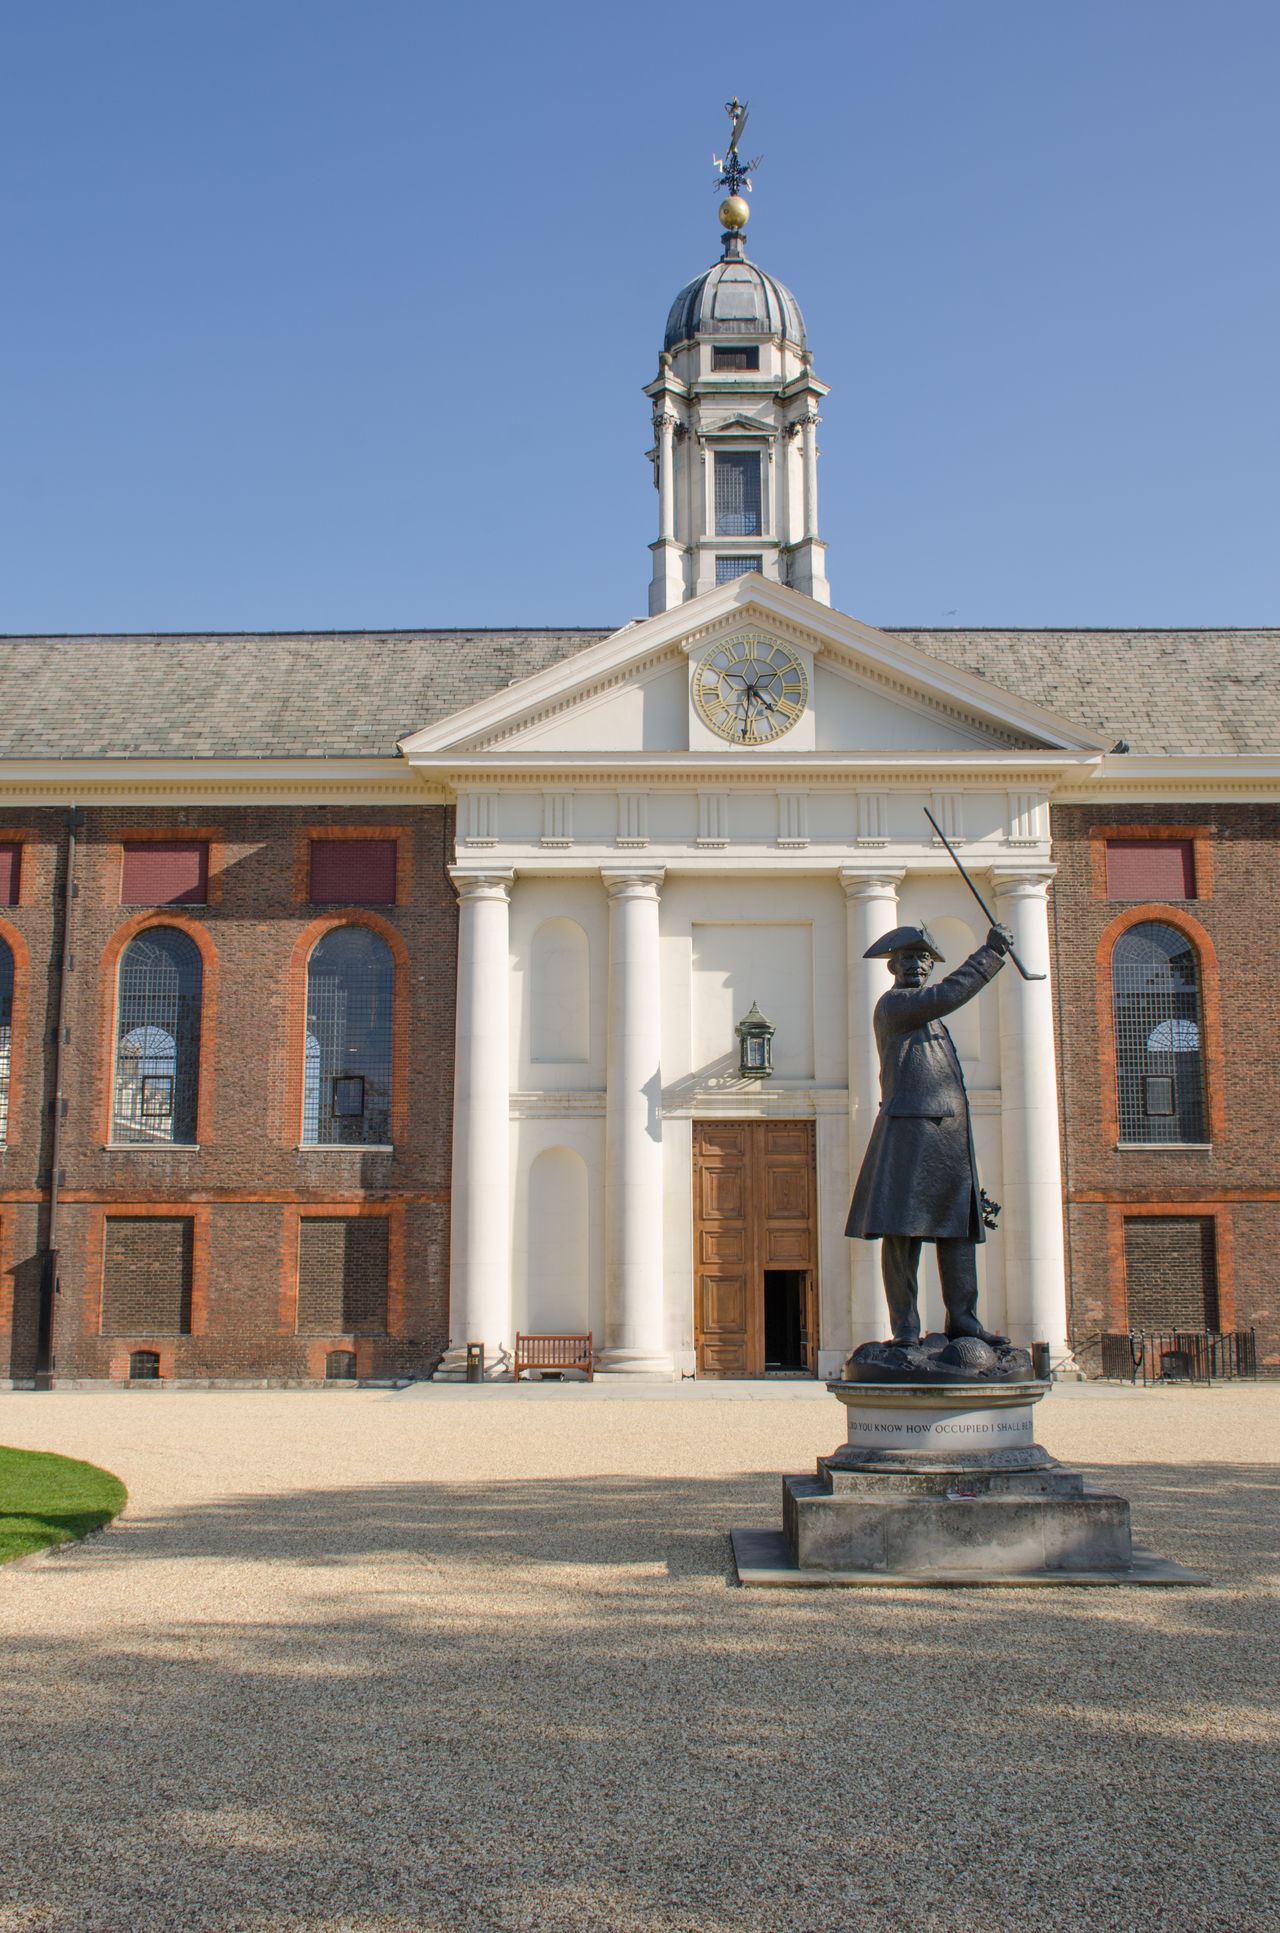 Front of Royal Chelsea Hospital with pensioner statue at entrance Architecture Architecture Building Exterior Built Structure Chelsea Chelsea Hospital Christopher Wren Door Façade Front View Grand Outdoors Statue Veterans War Wren